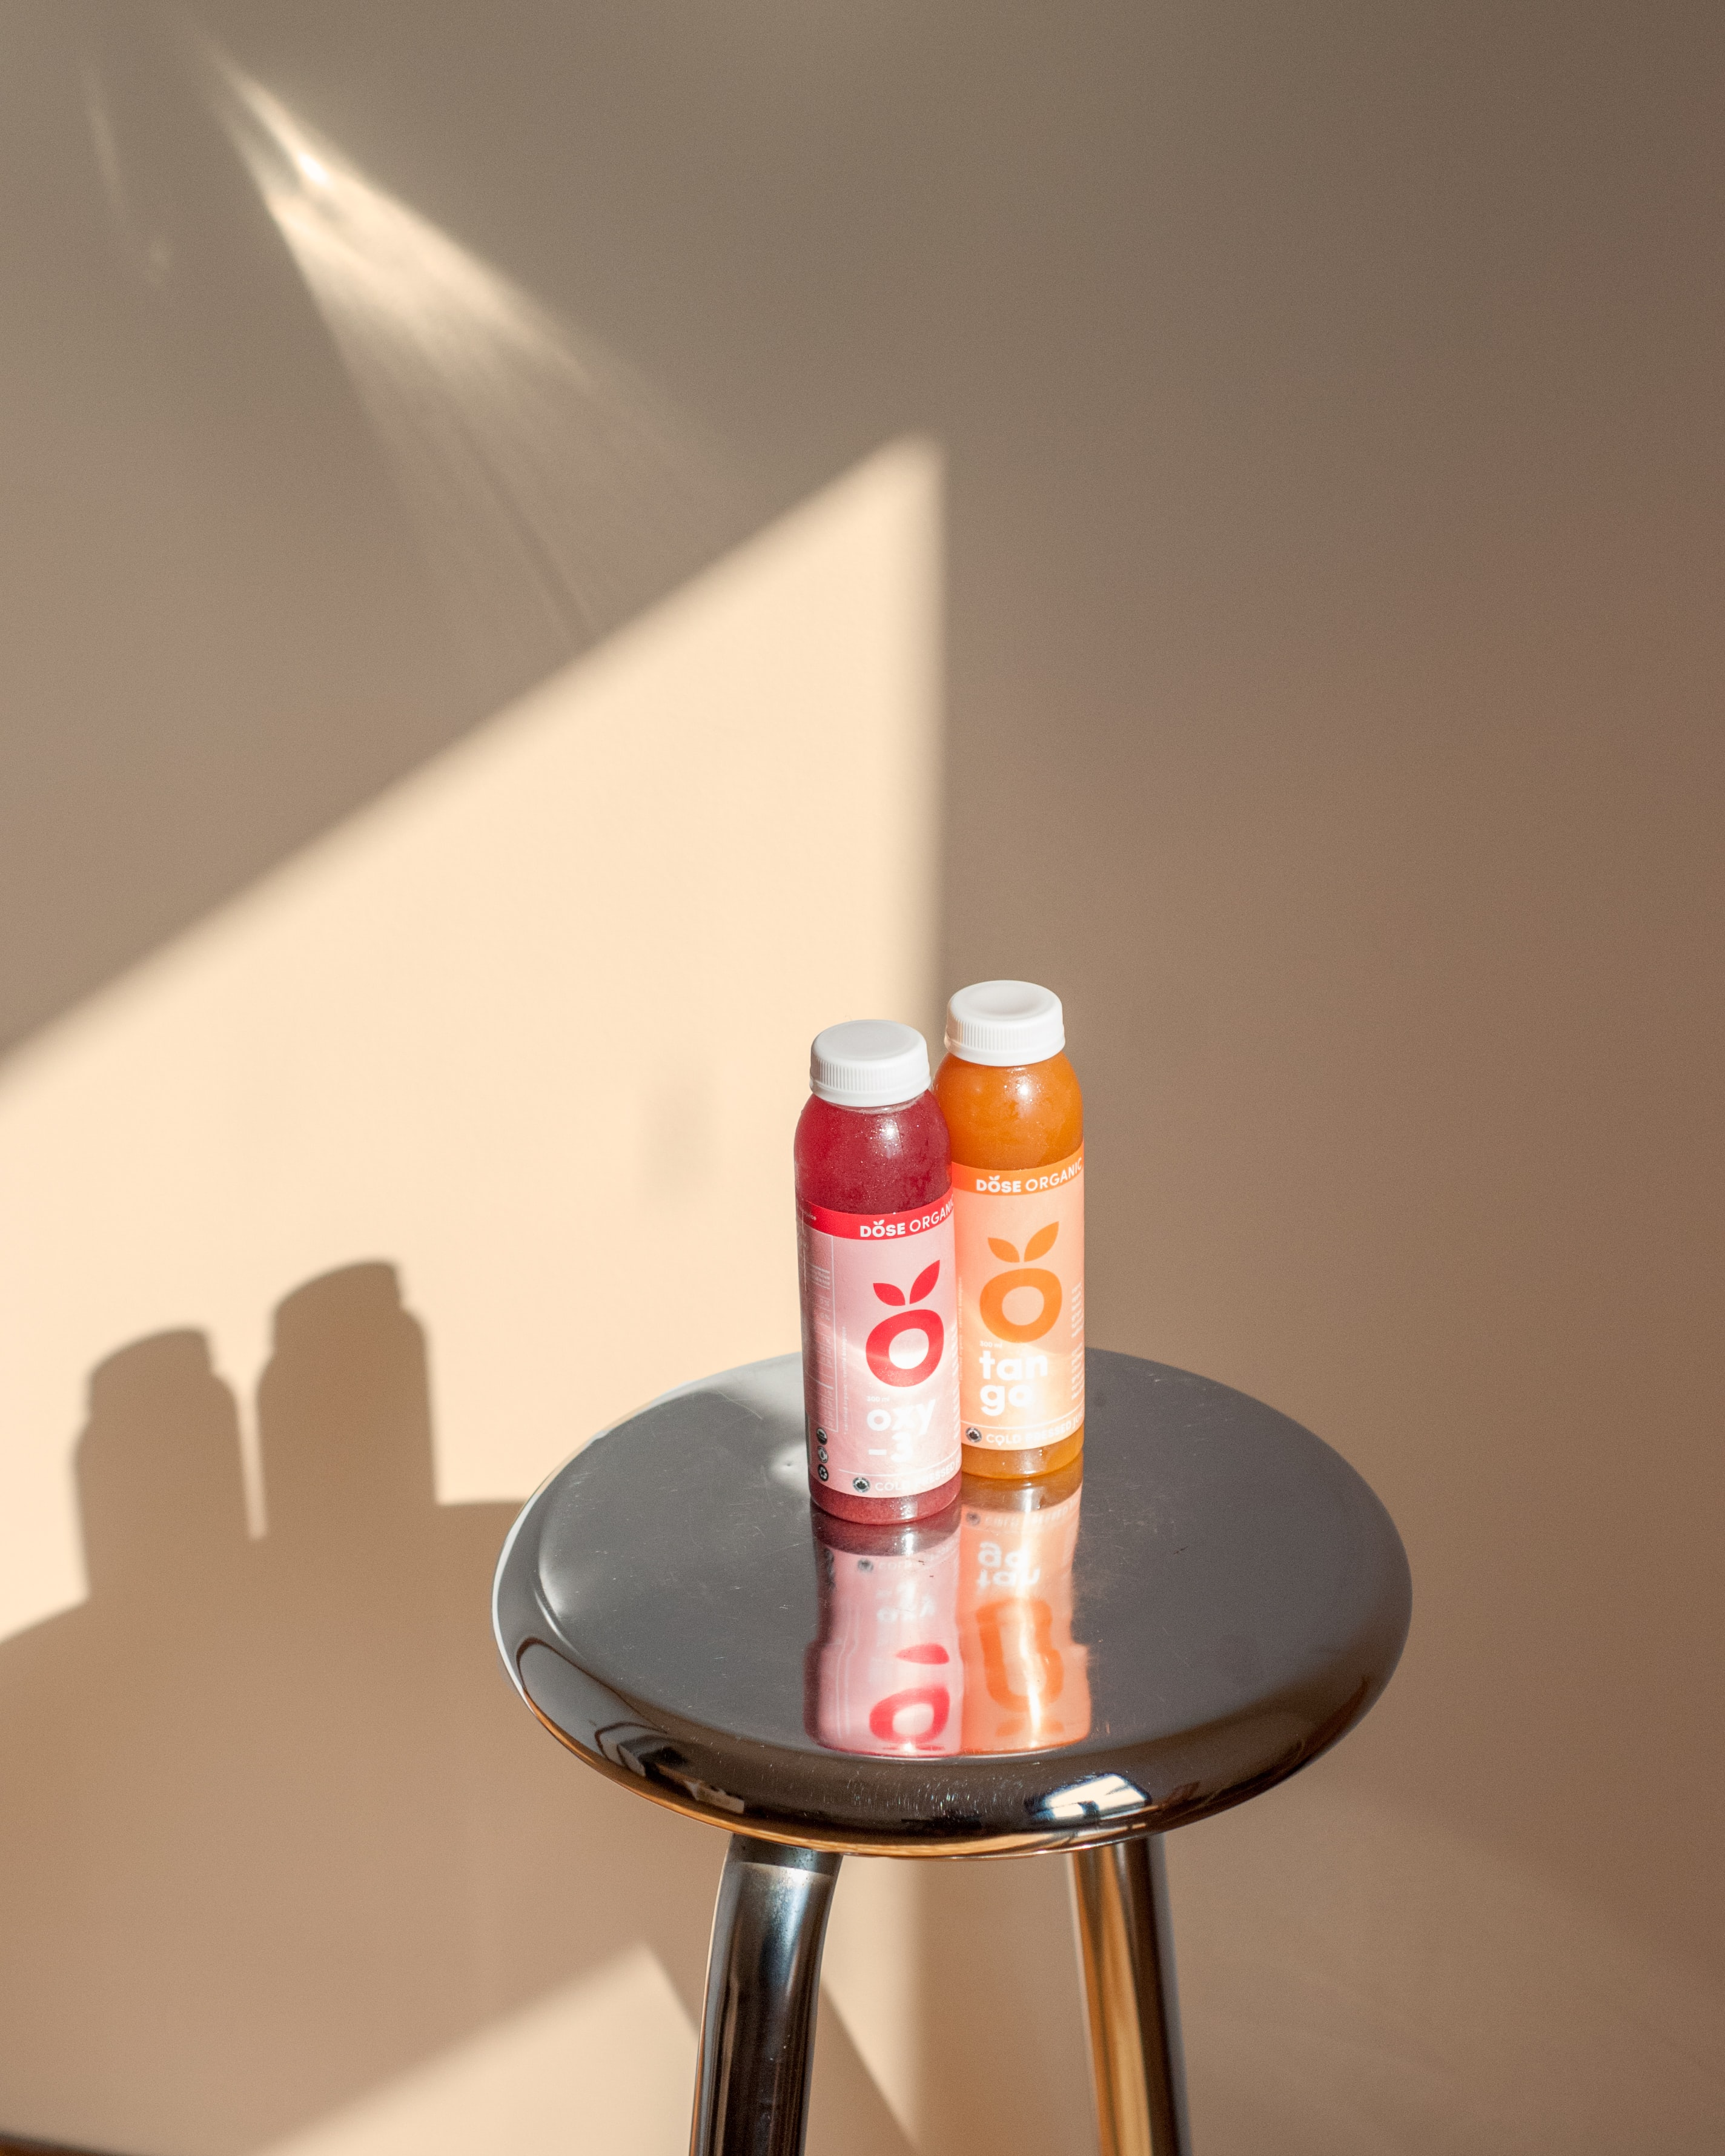 Two bottles of DOSE Juice on a stool